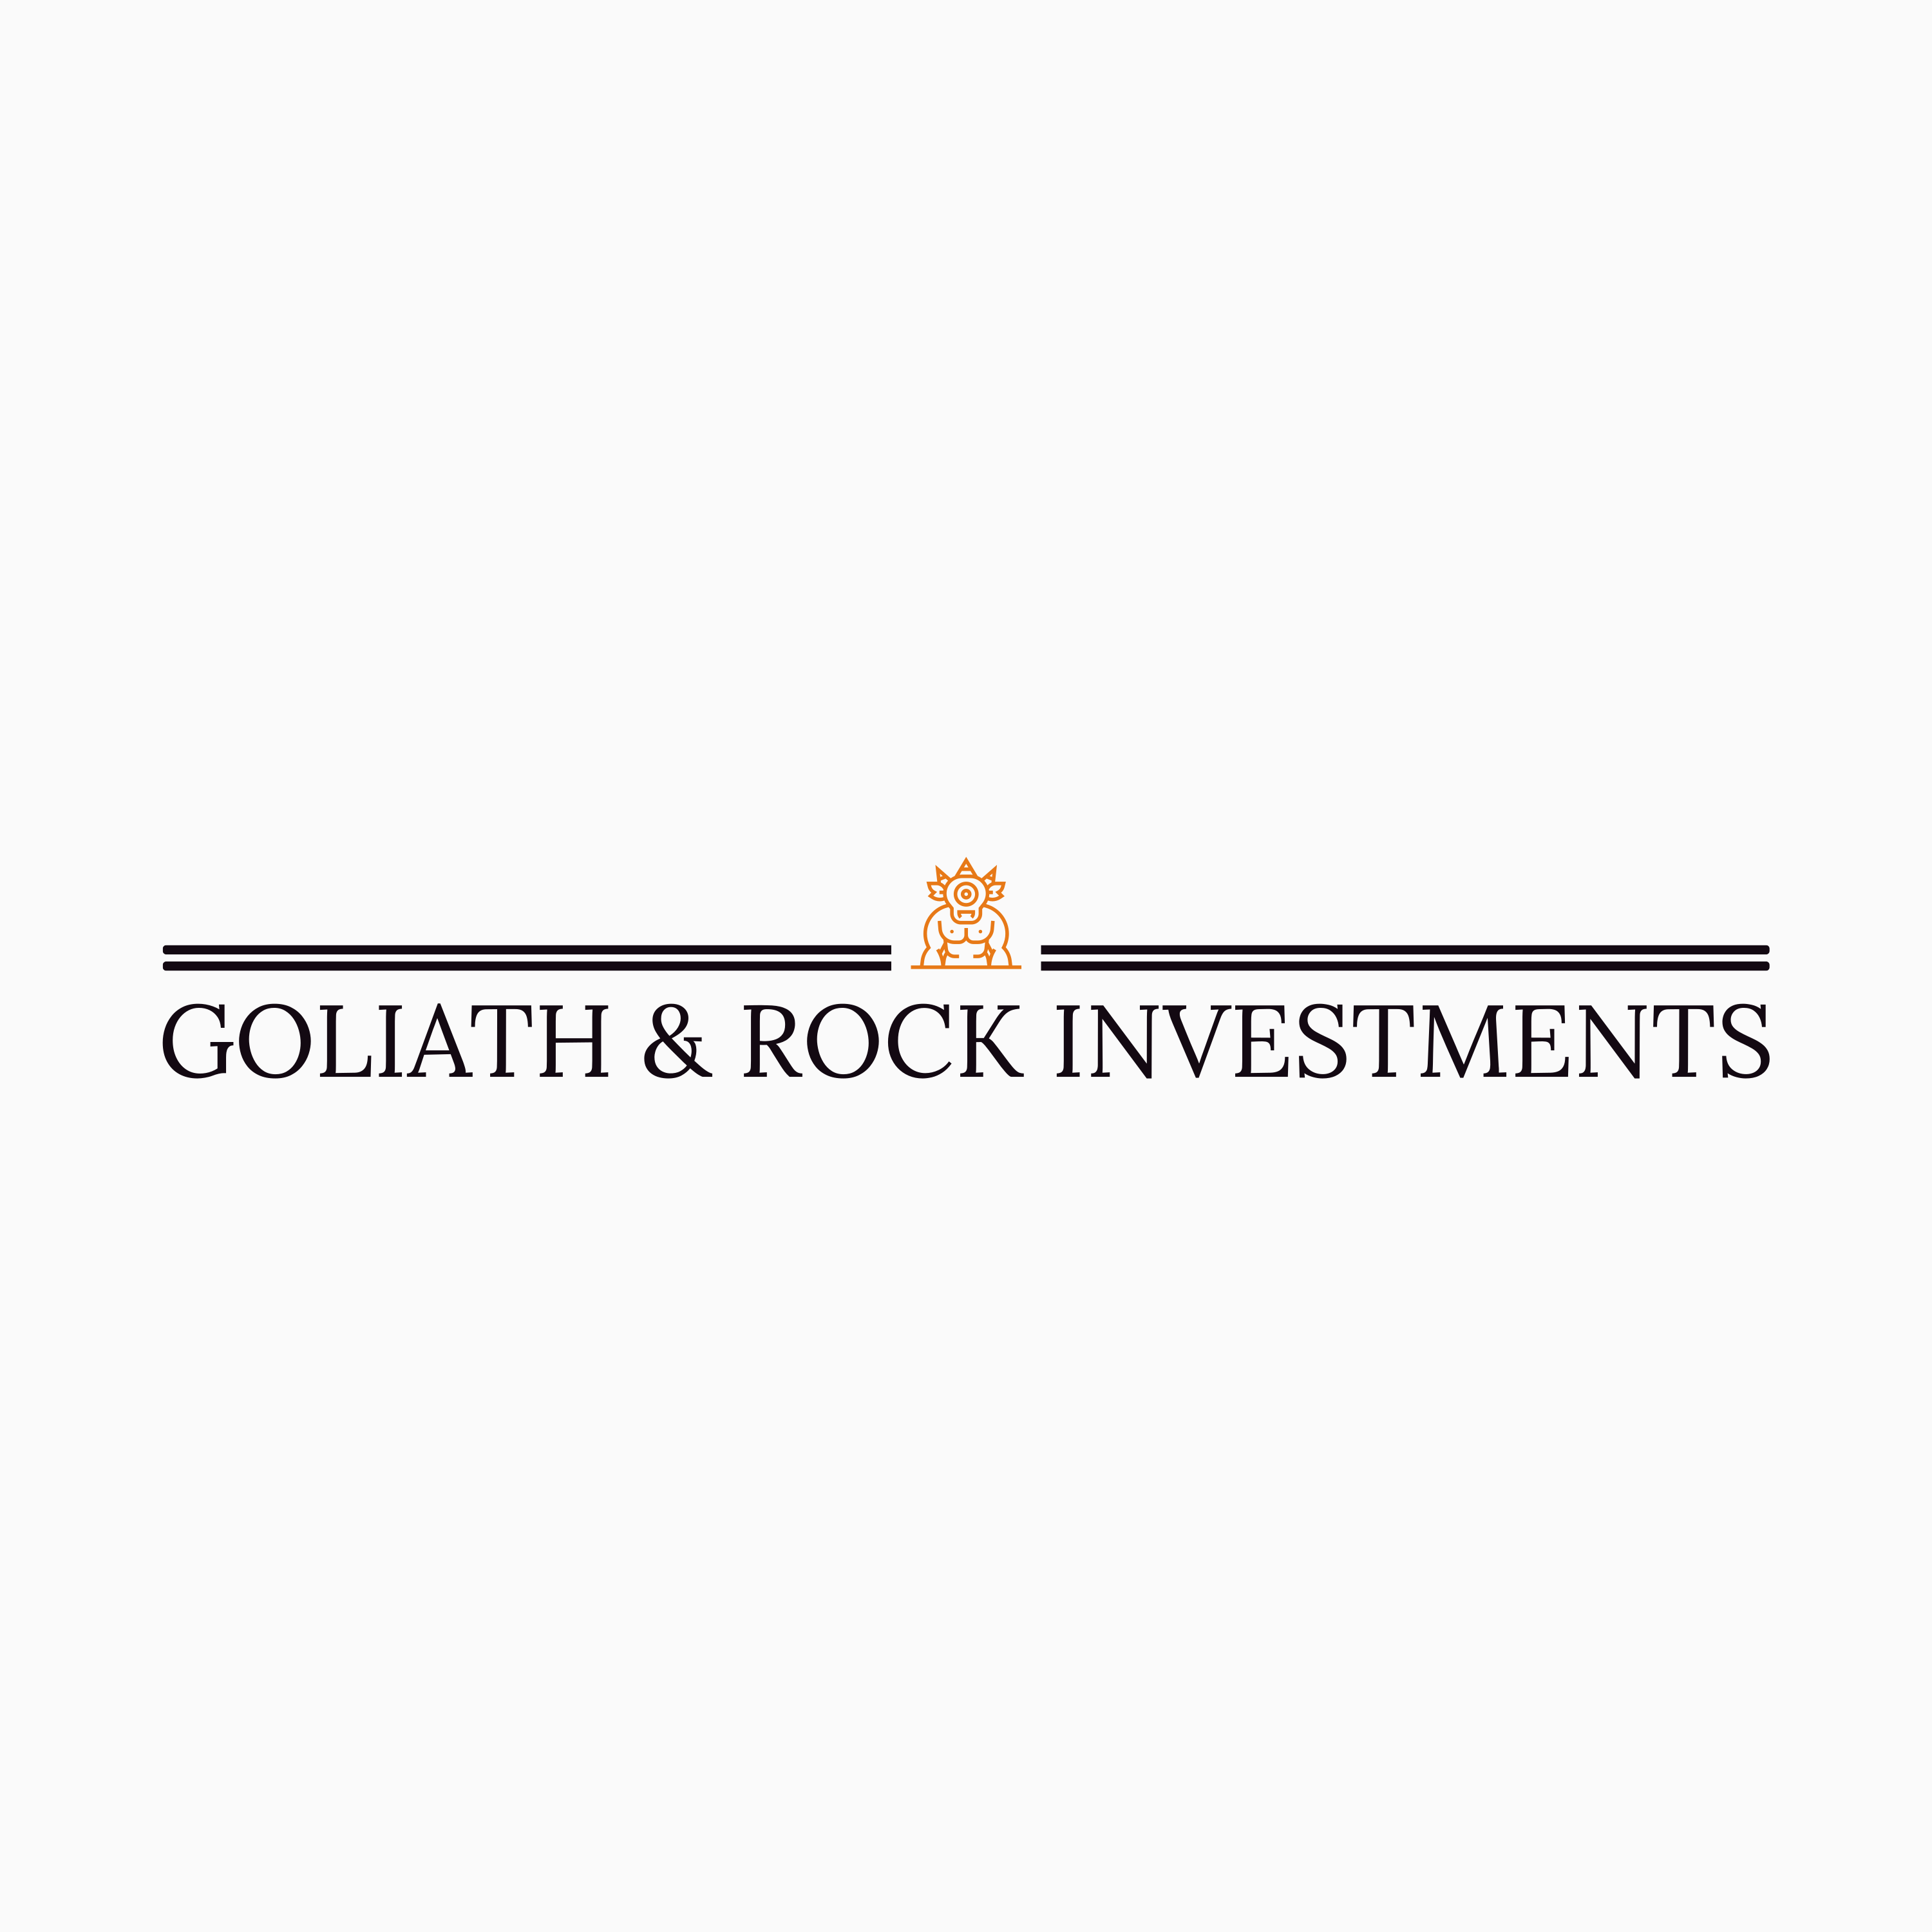 GOLIATH & ROCK INVESTMENTS